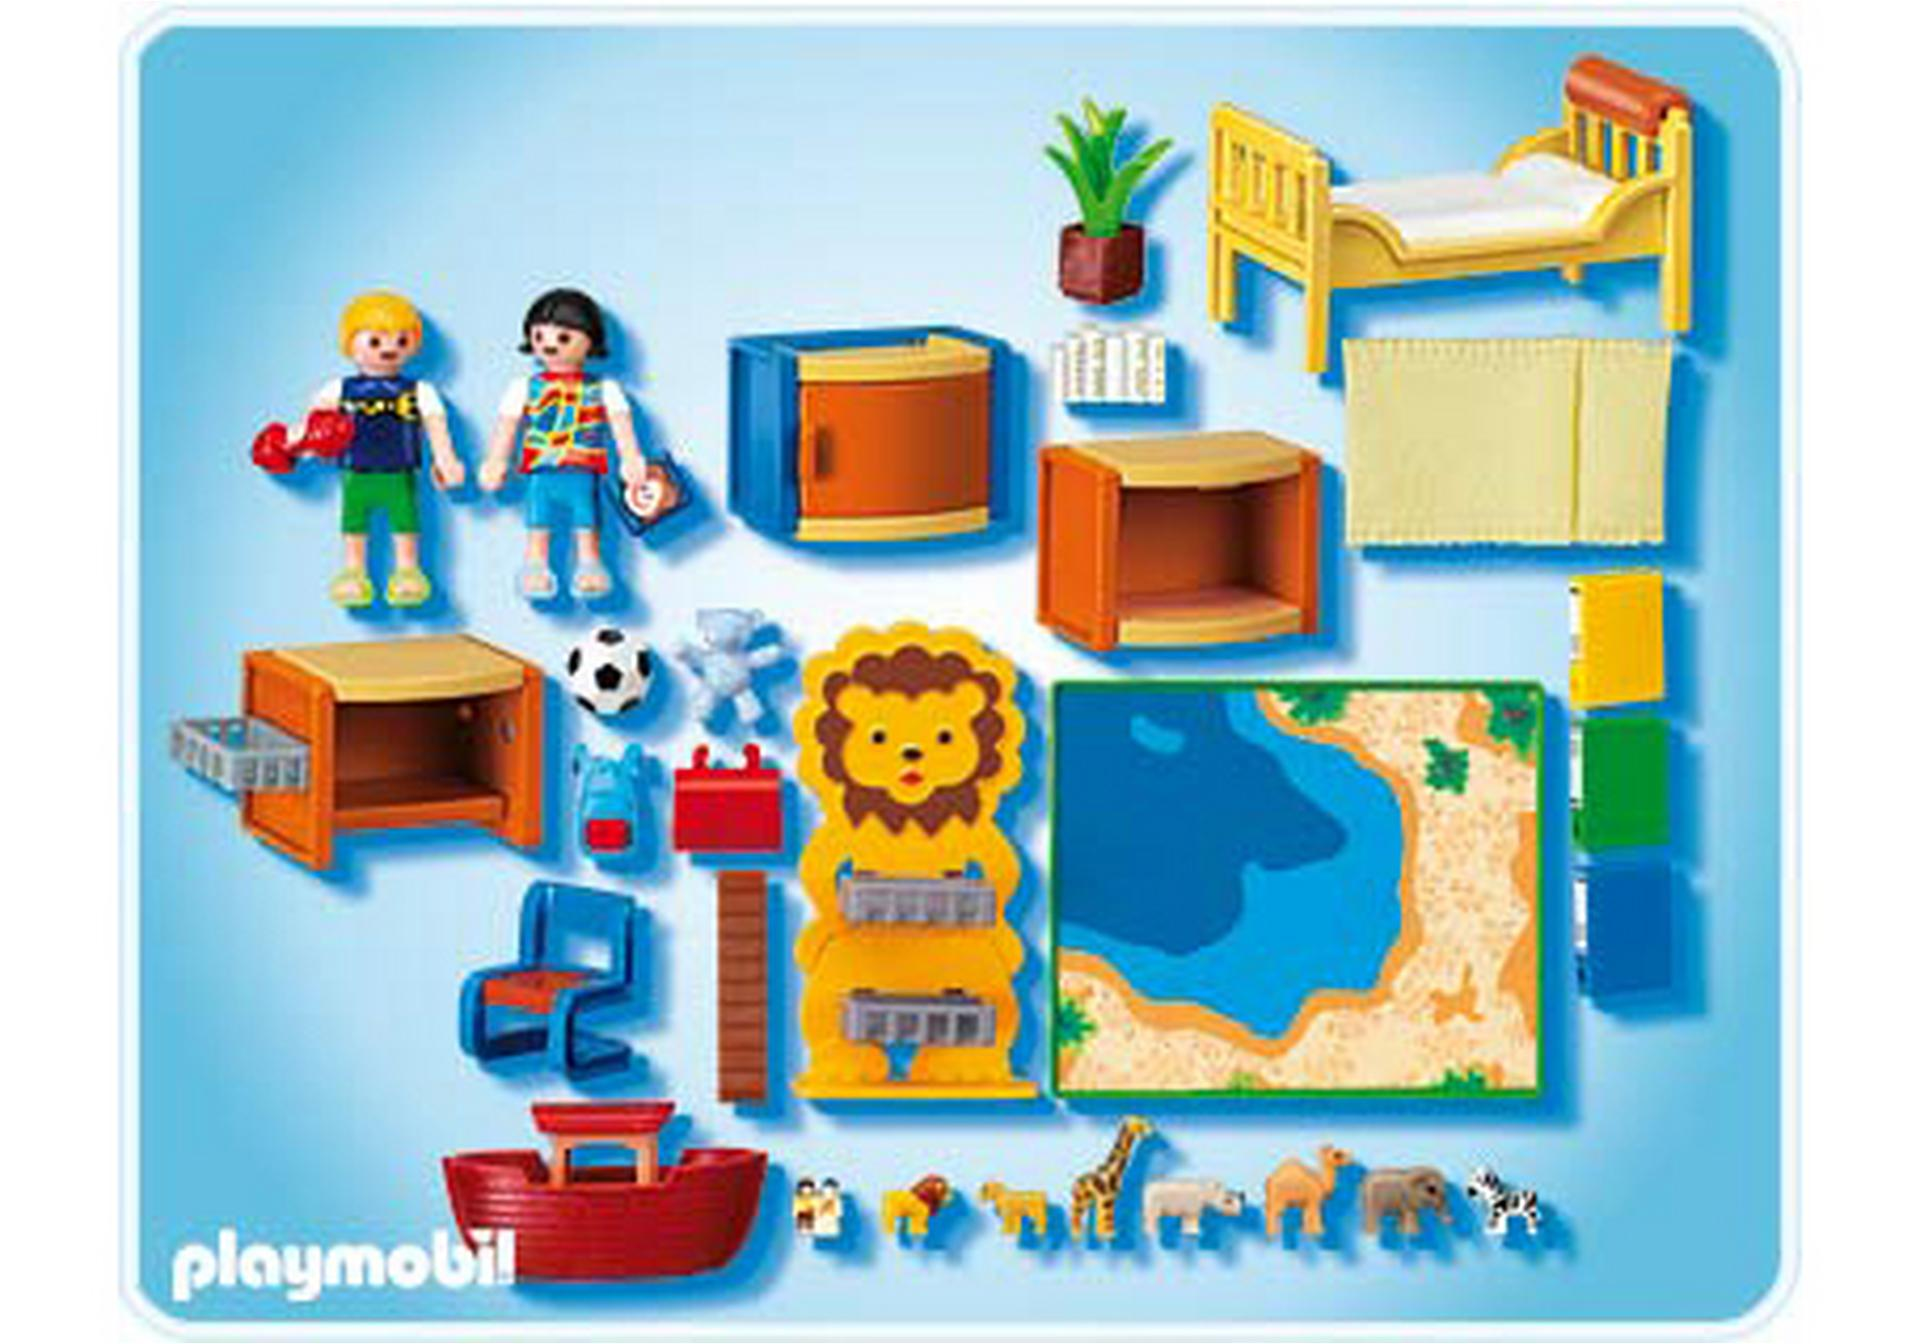 Chambre des enfants 4287 a playmobil france for Photos chambre enfants